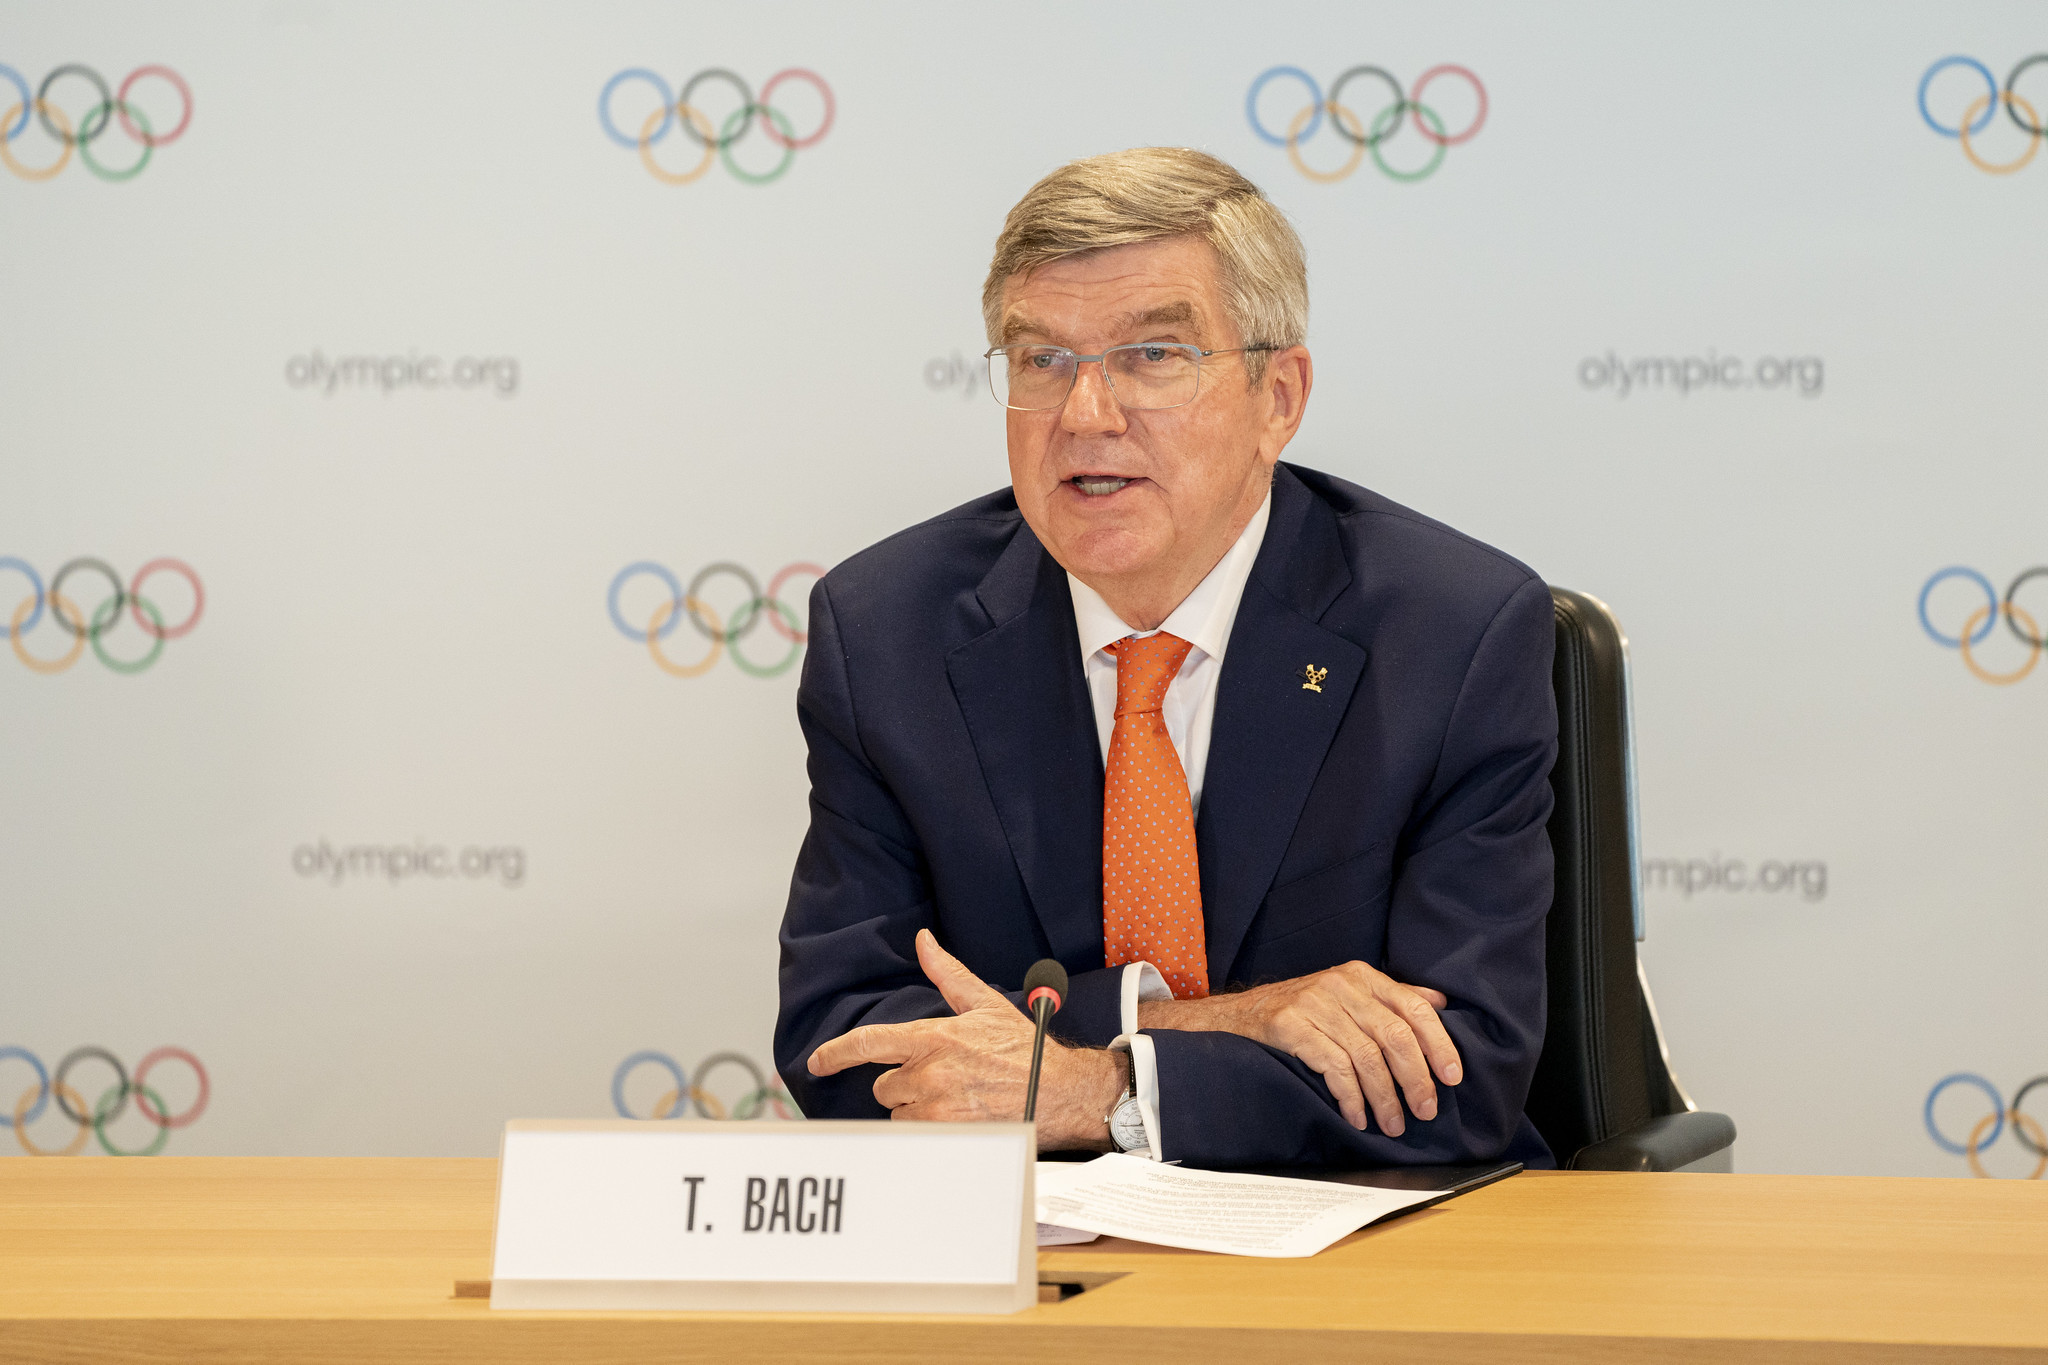 IOC President Thomas Bach welcomed the donation from Pfizer ©IOC